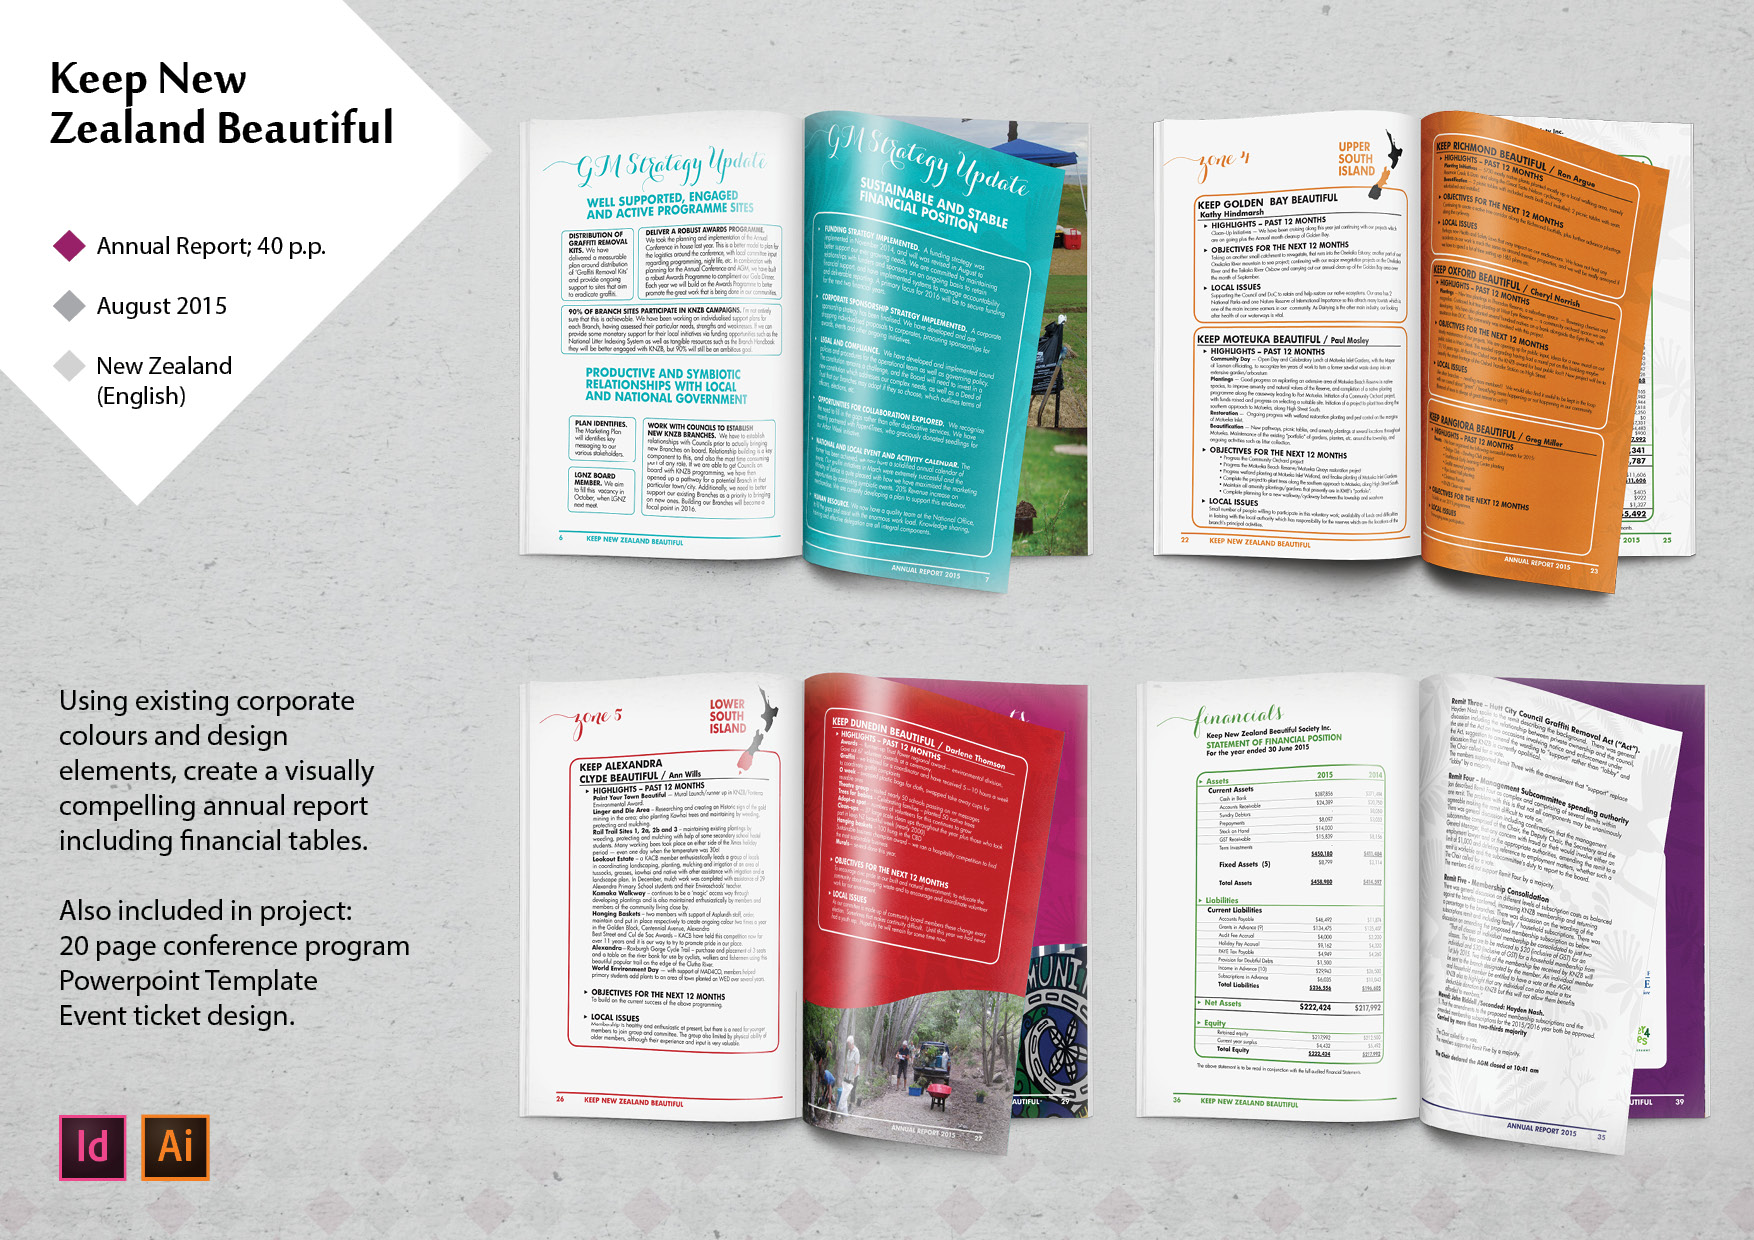 lakazdi graphic designer sample of work portfolio annual report keep new zealand beautiful indesign illustrator